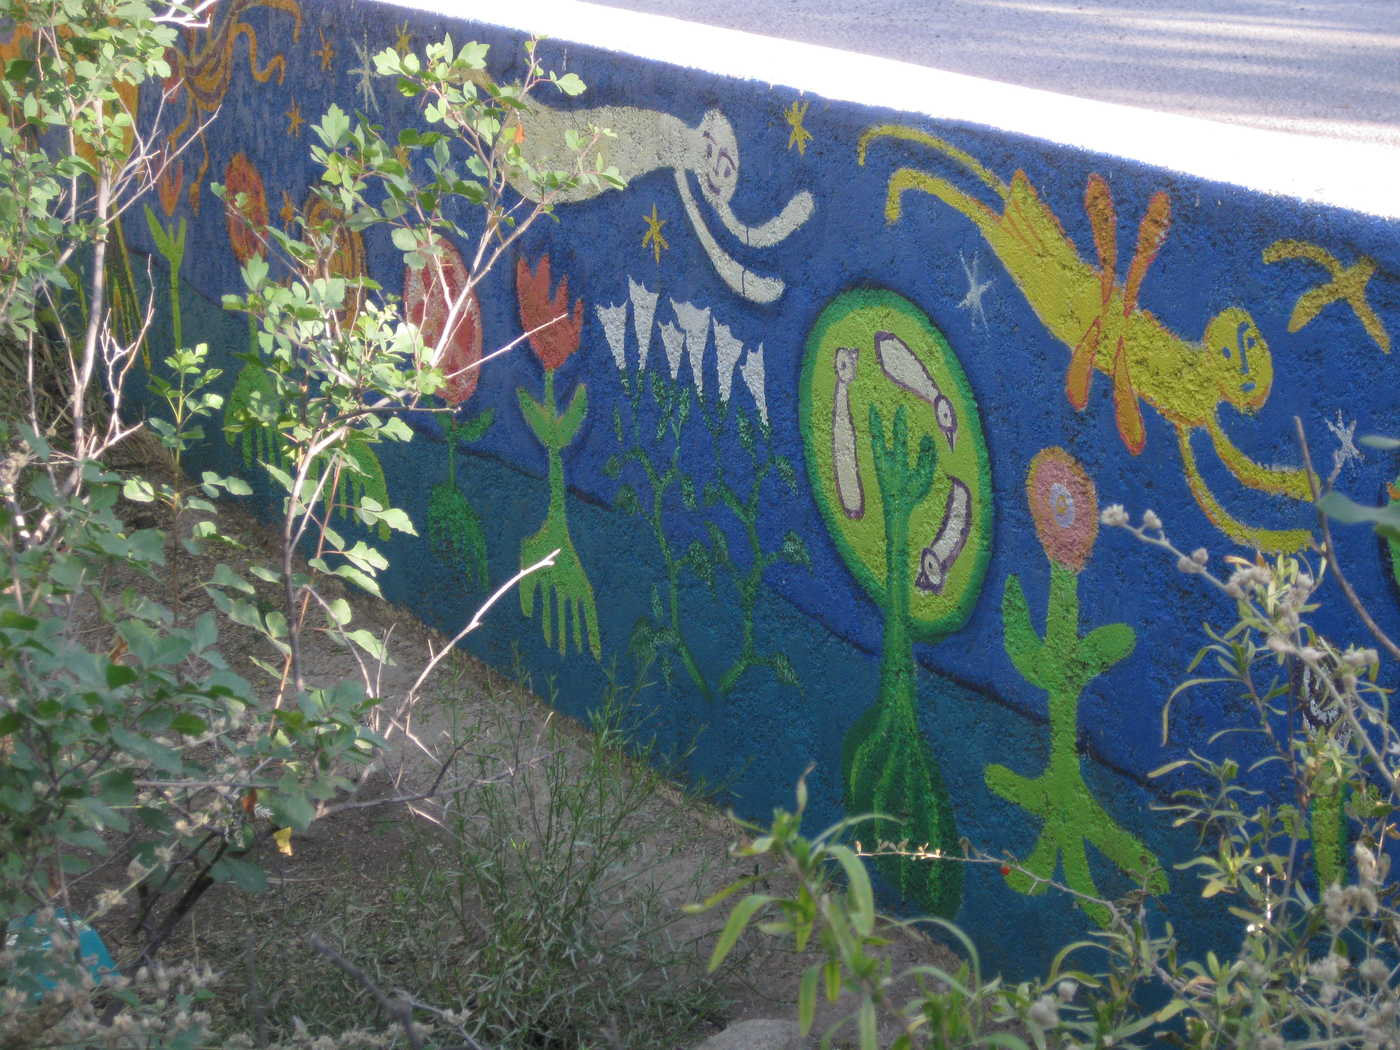 ...or Mural Garden? These Photos Are From University, Just West Of 11th,  The Organic Community Garden And Mini Nature Park, In The Art Filled  Dunbar/Spring ...